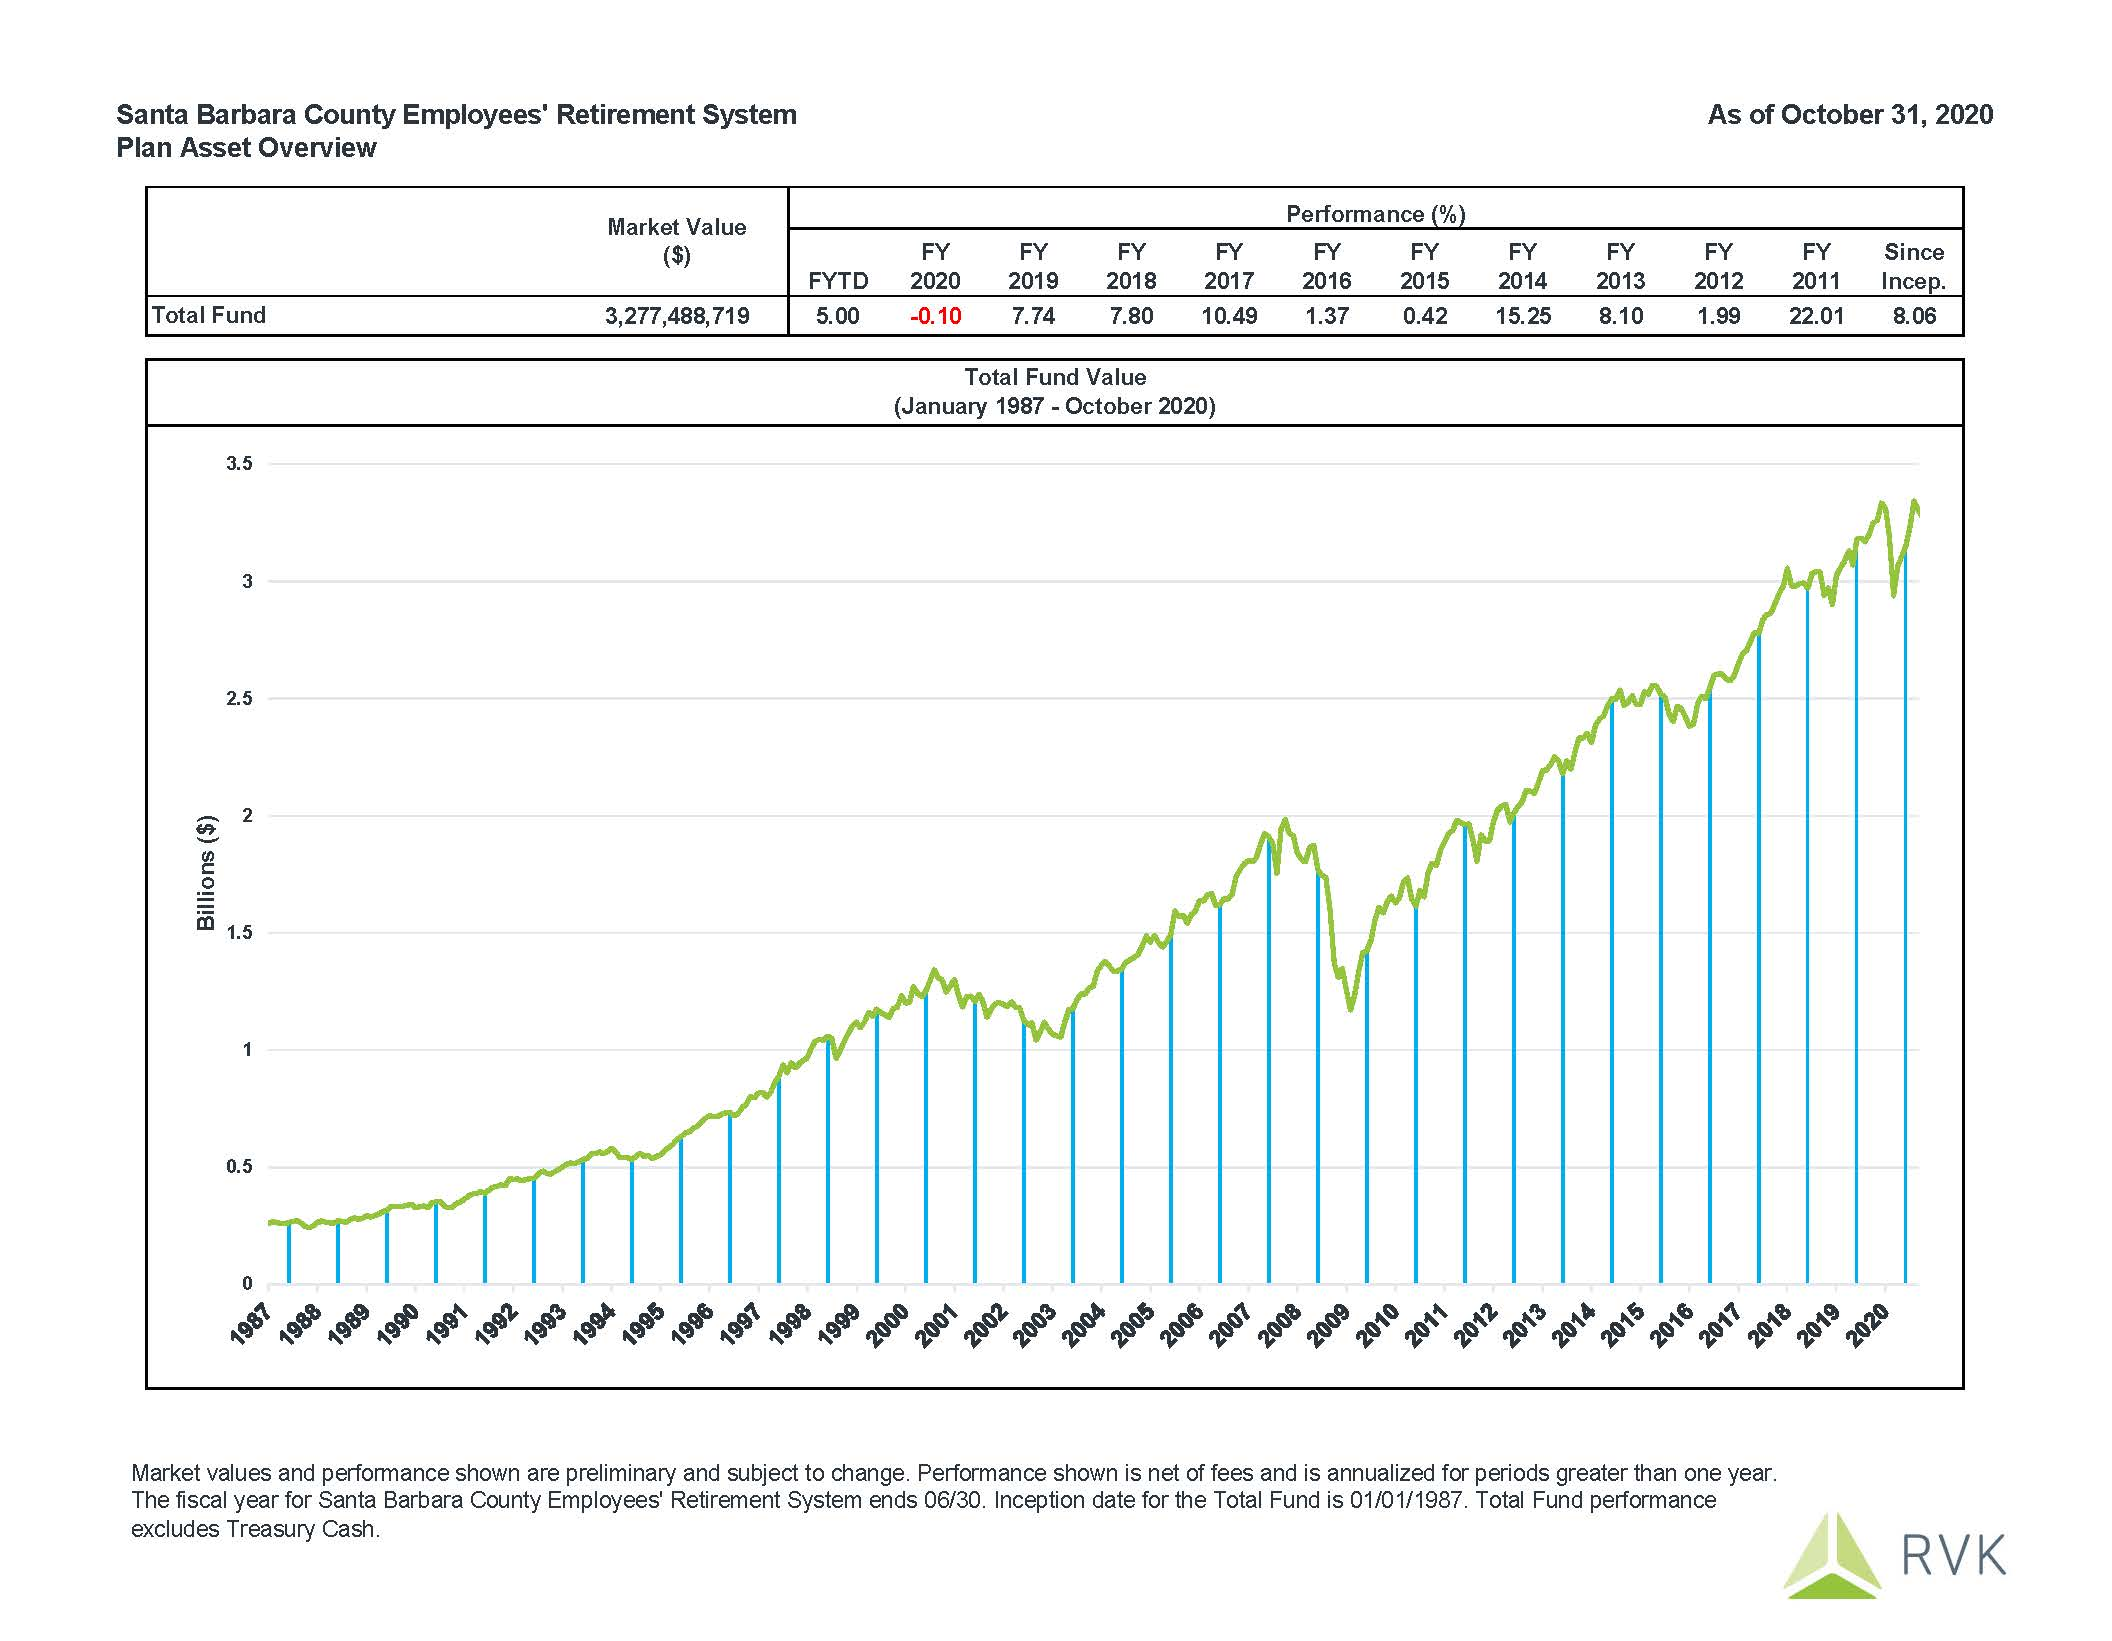 October 2020 Fund Performance: Fiscal Year to Date performance is 5.00%.